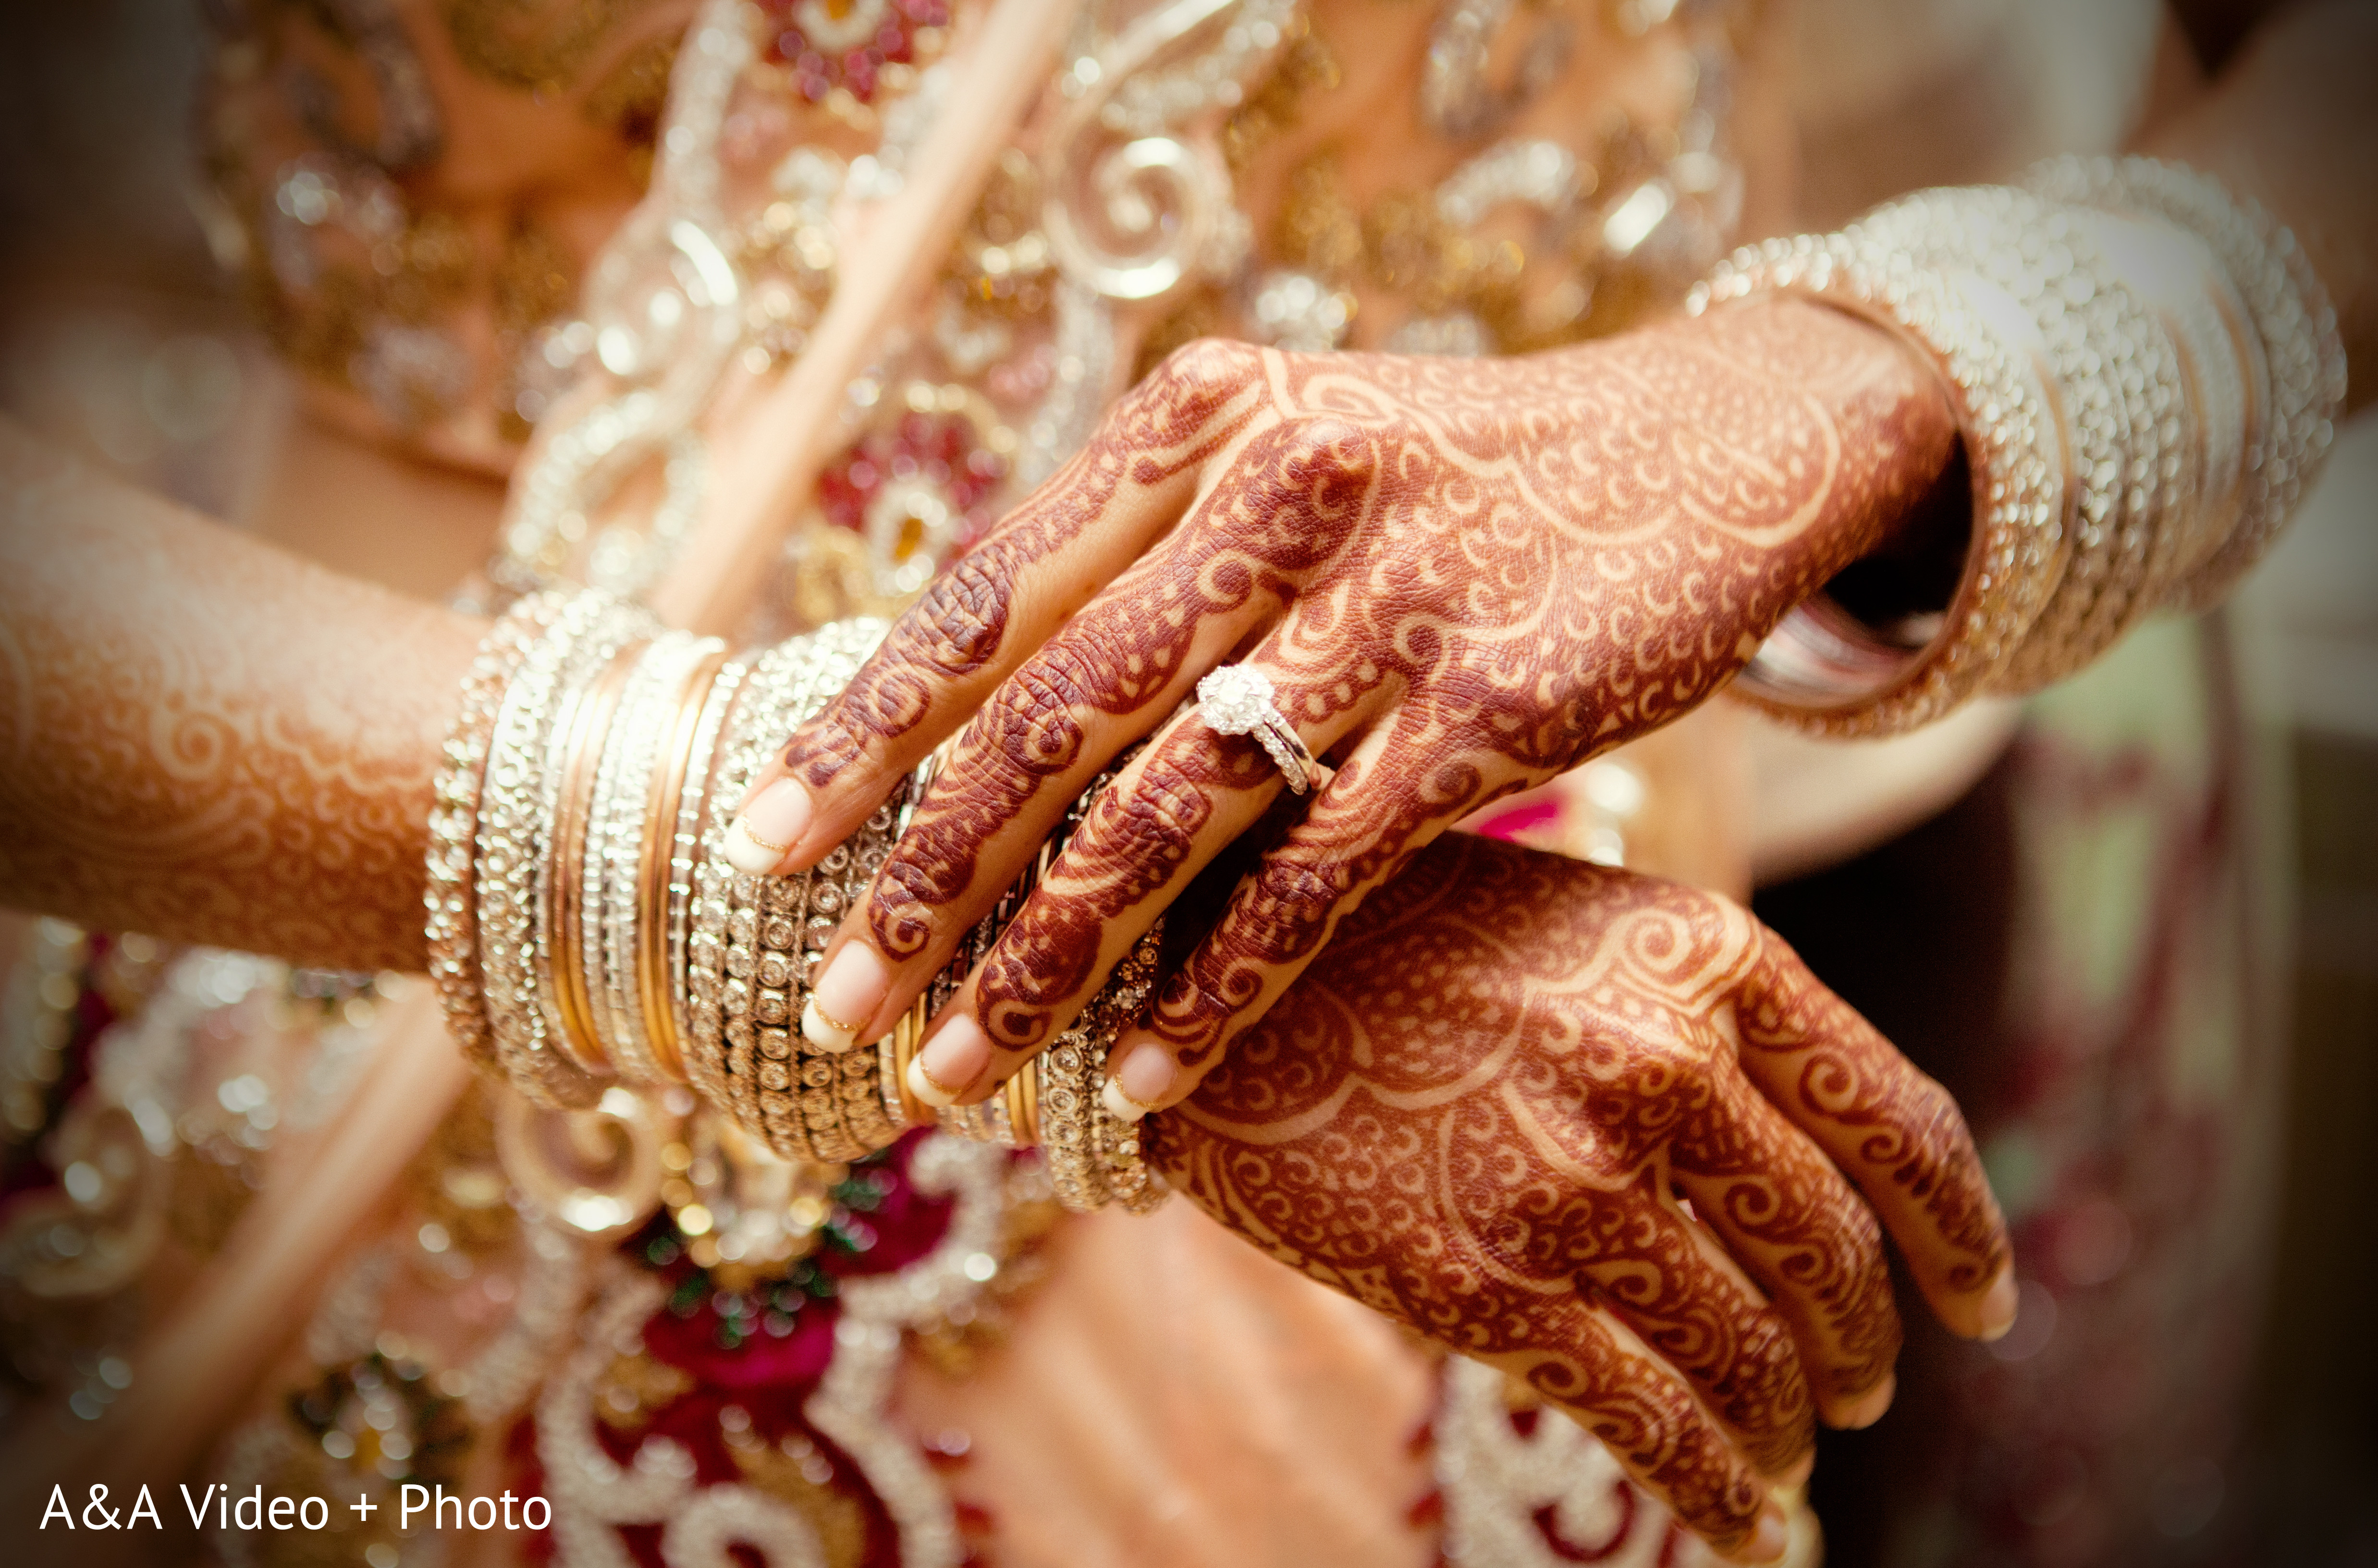 Mehndi Designs For Hands For Engagement : Mehndi designs in houston tx indian wedding by a video photo